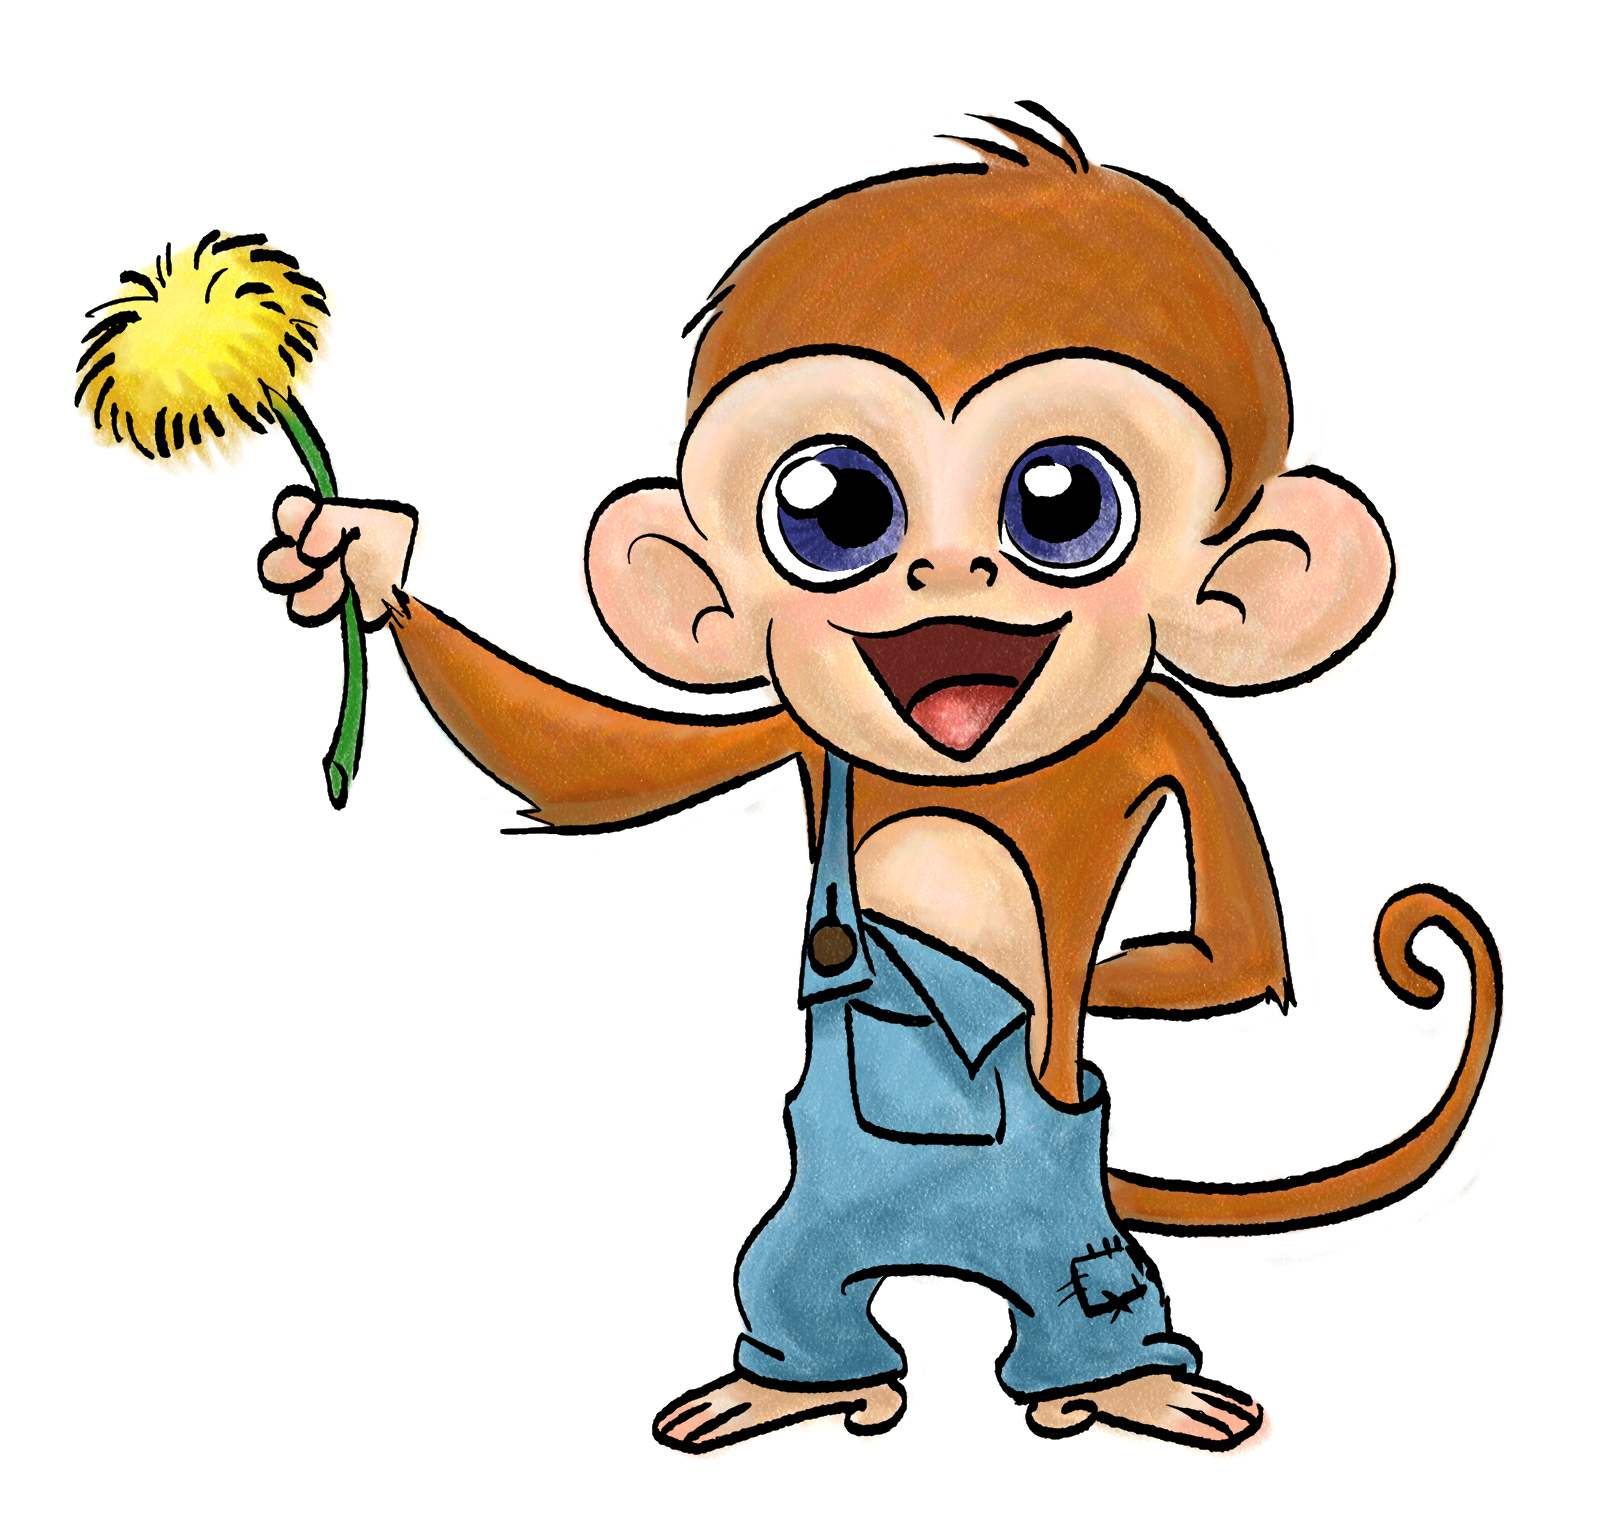 1616x1524 Cute Monkey Drawings Requested Monkey Drawn To Draw